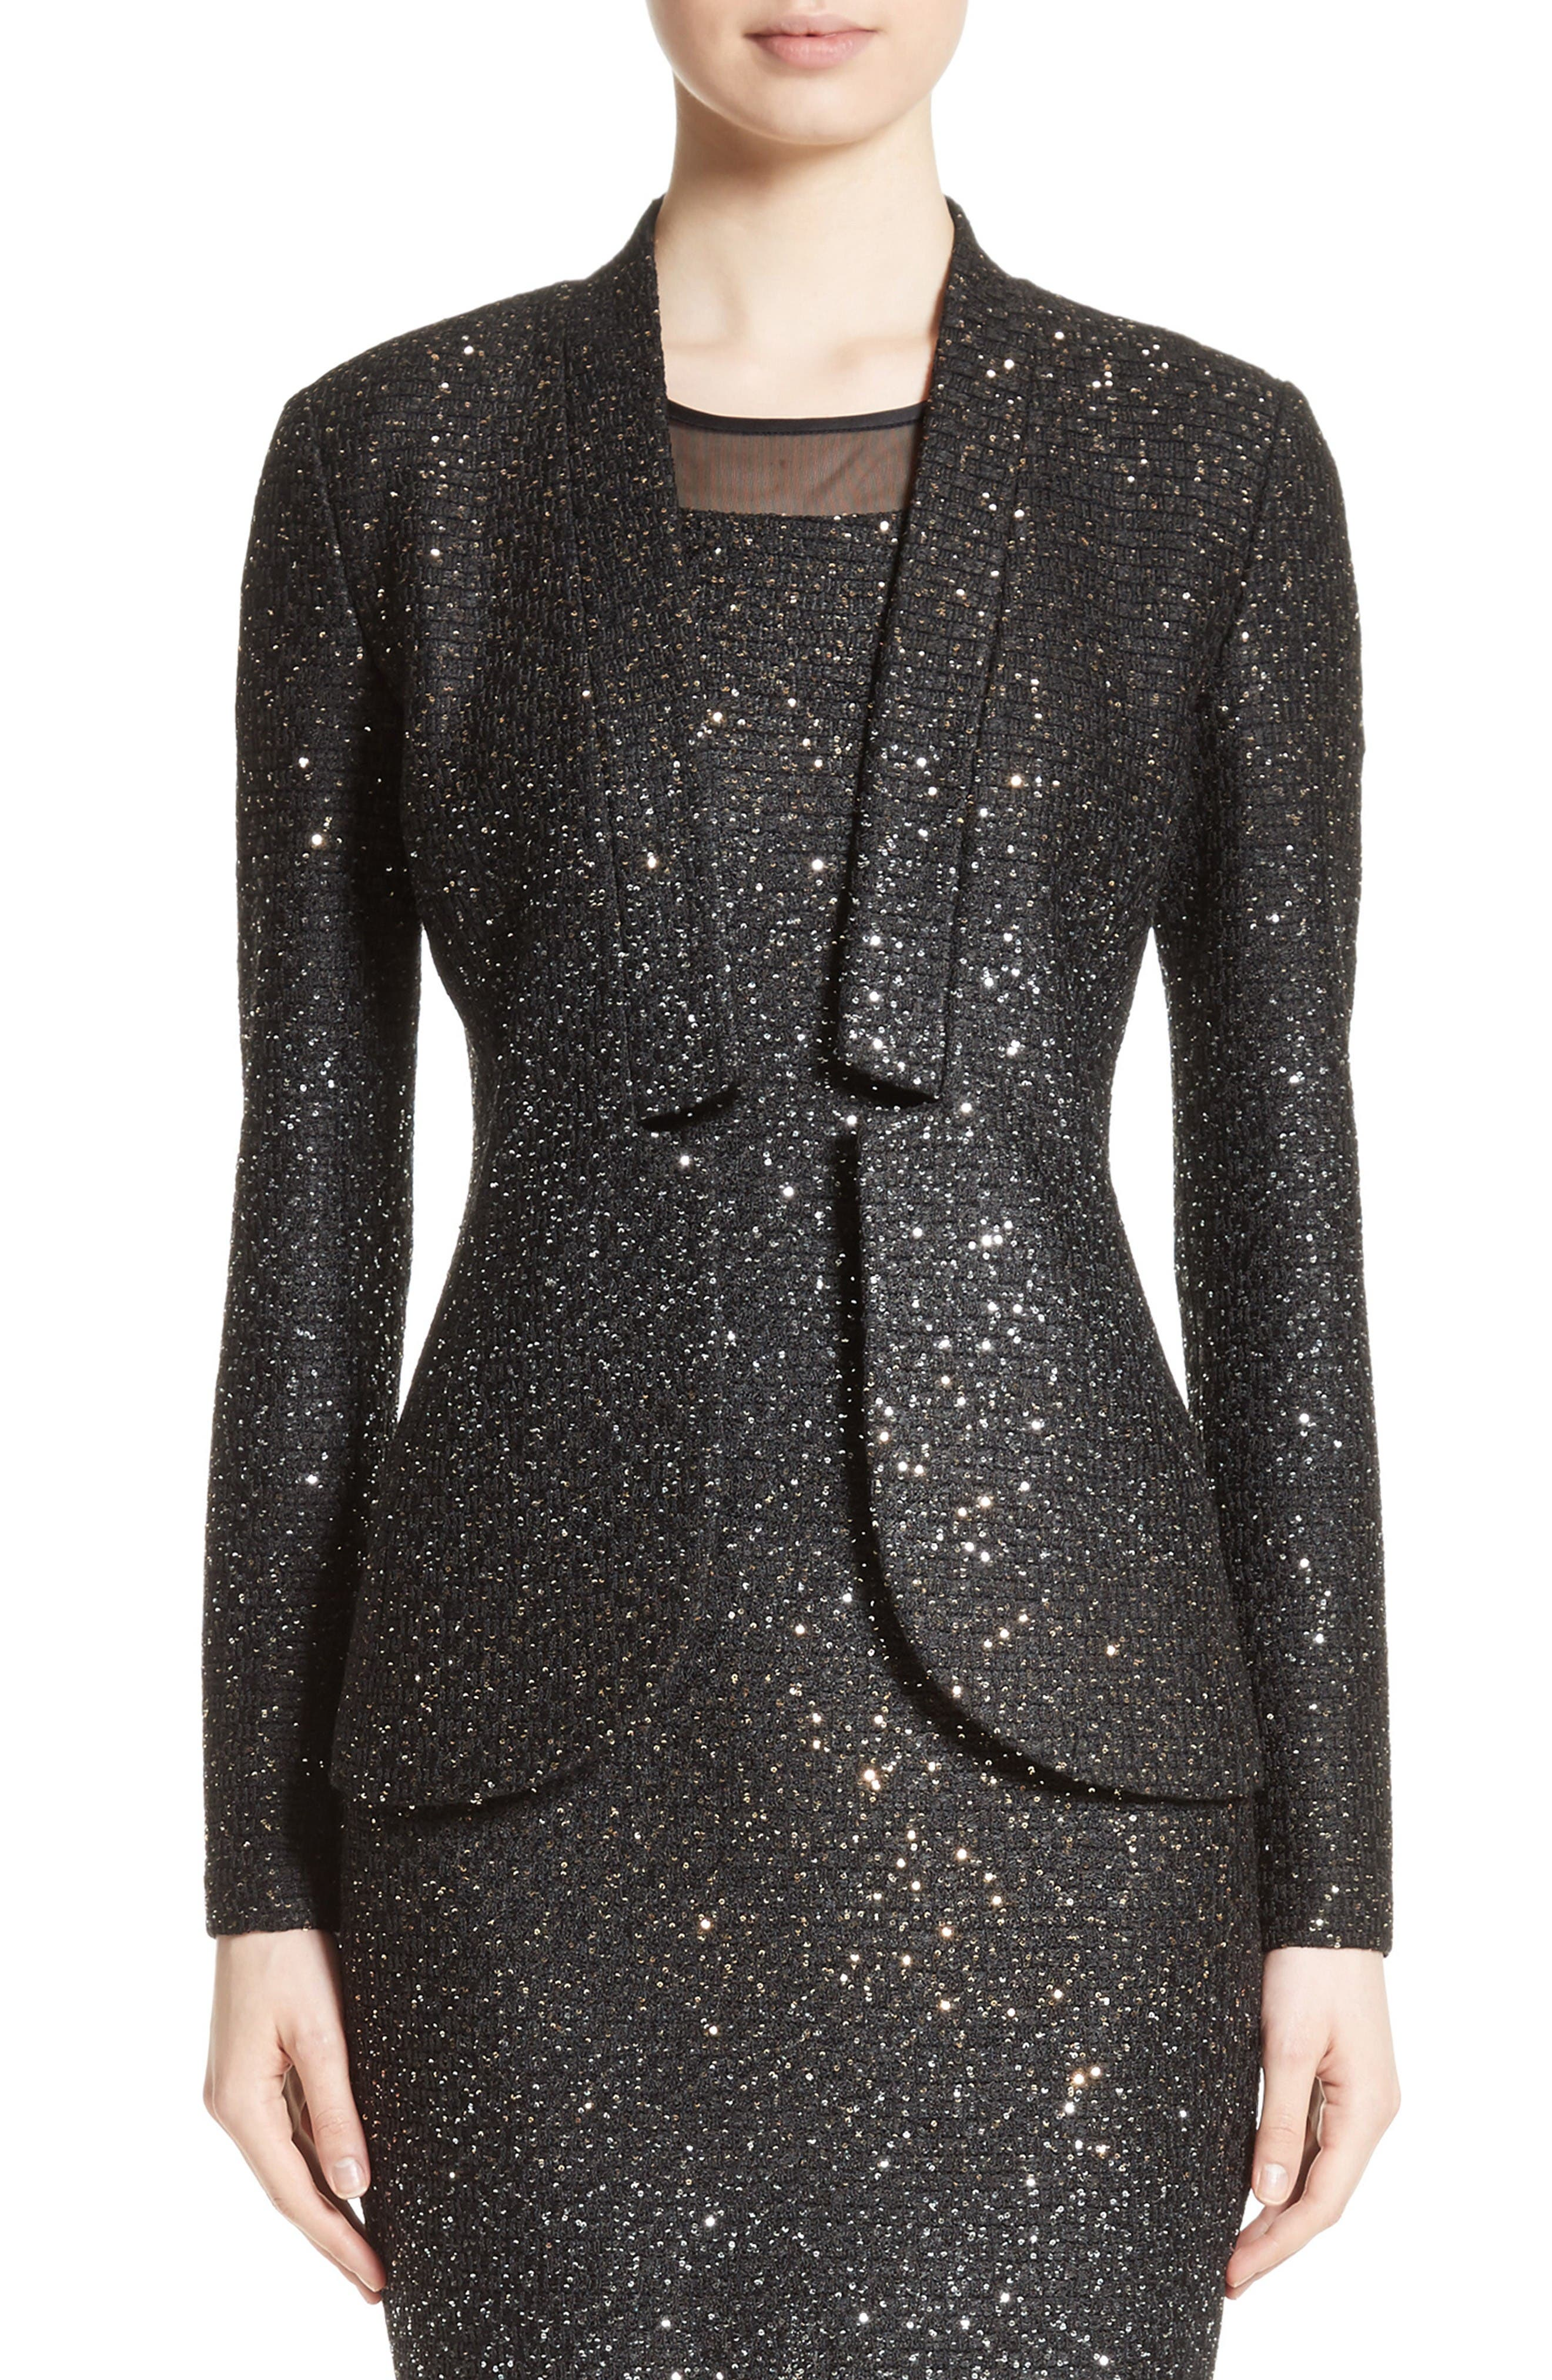 Main Image - St. John Collection Pranay Sequin Knit Jacket